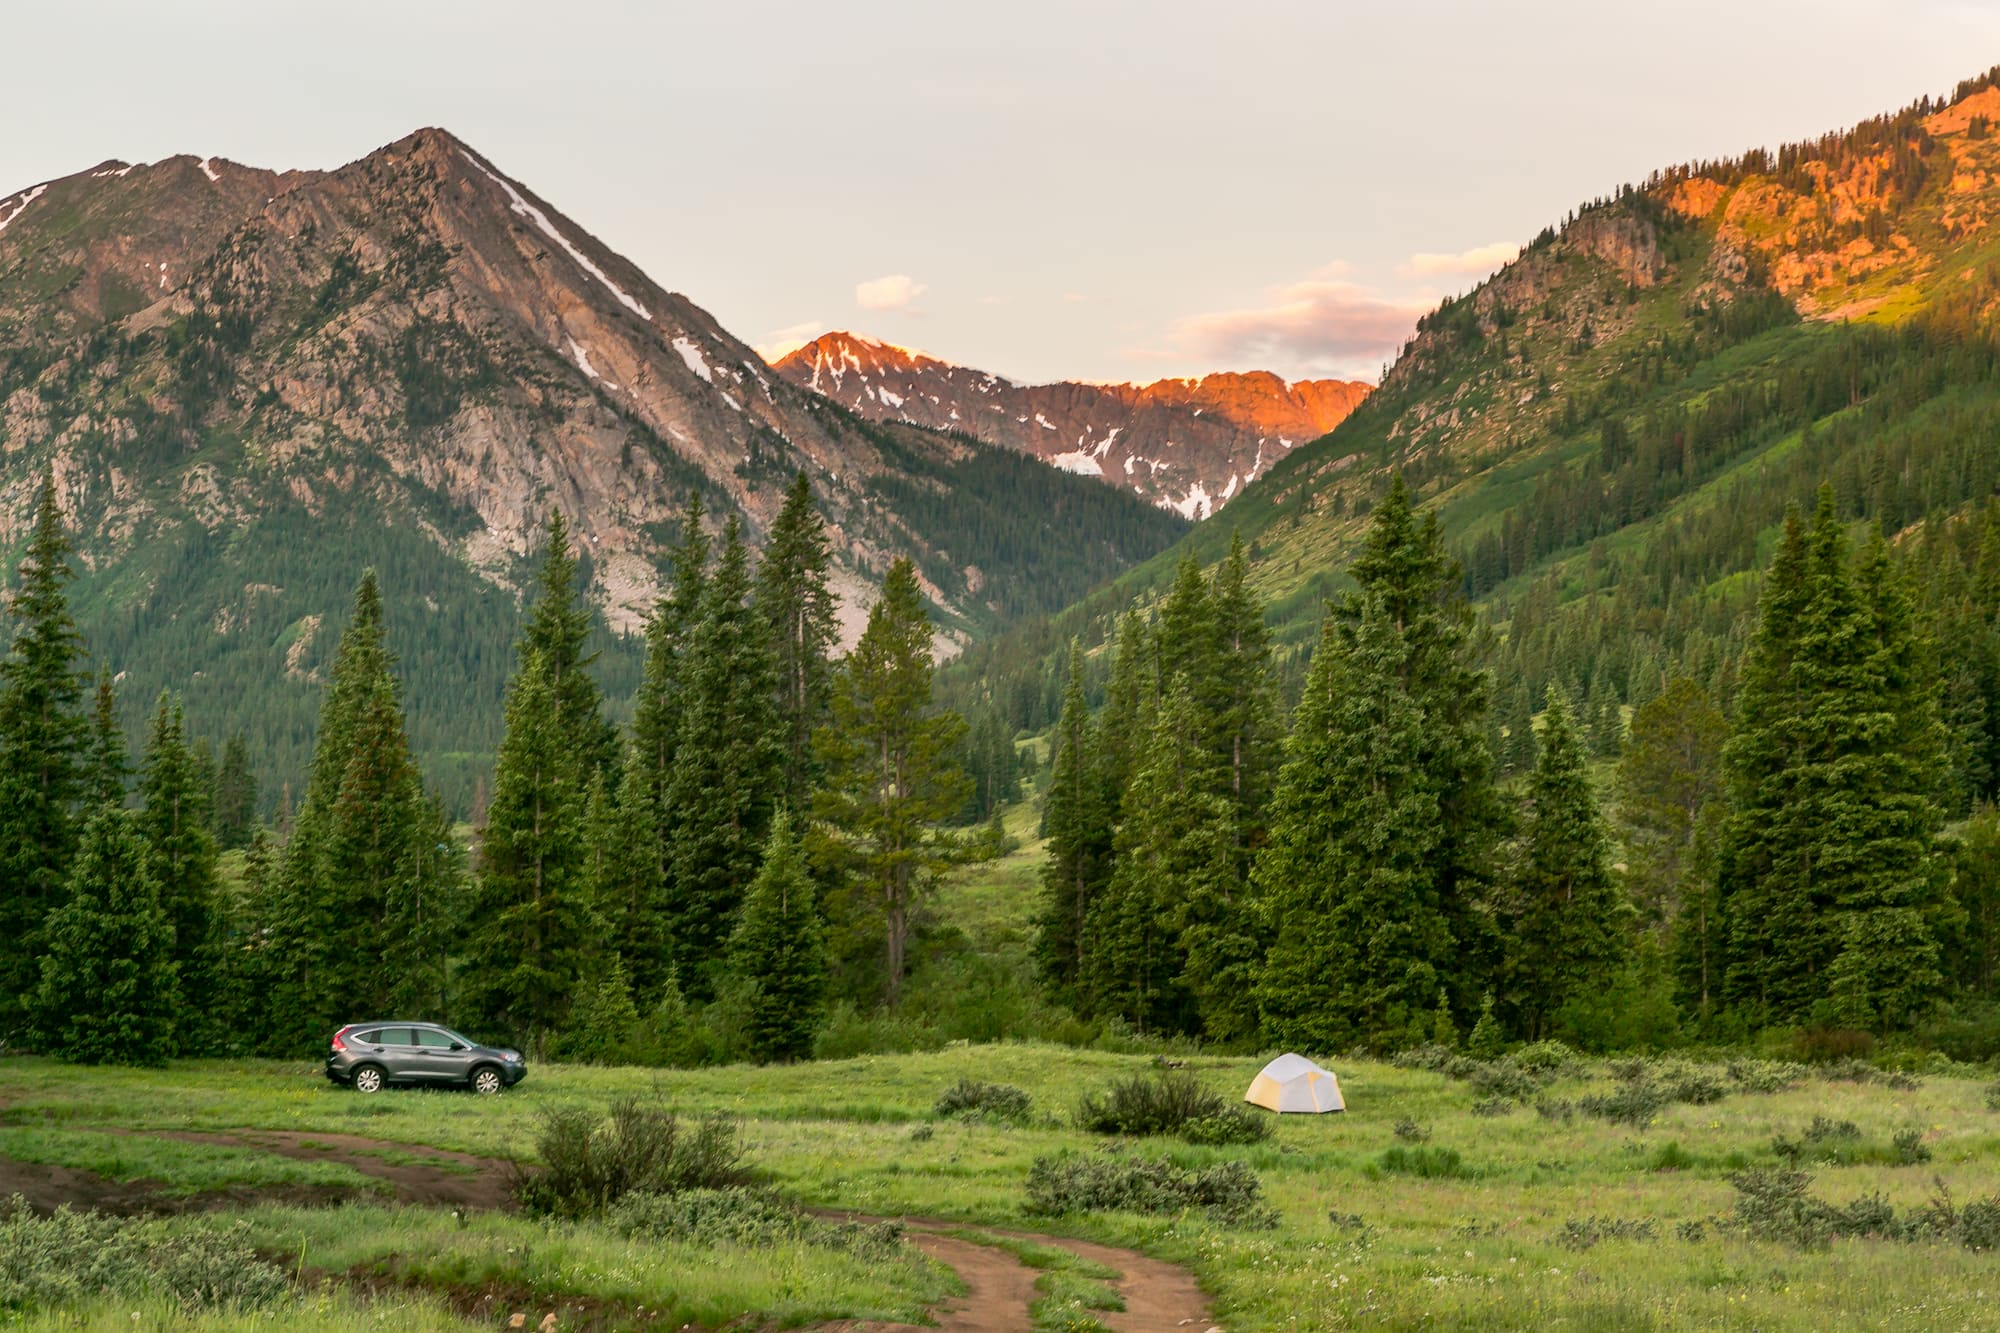 Car parked below rocky mountain range during alpenglow.